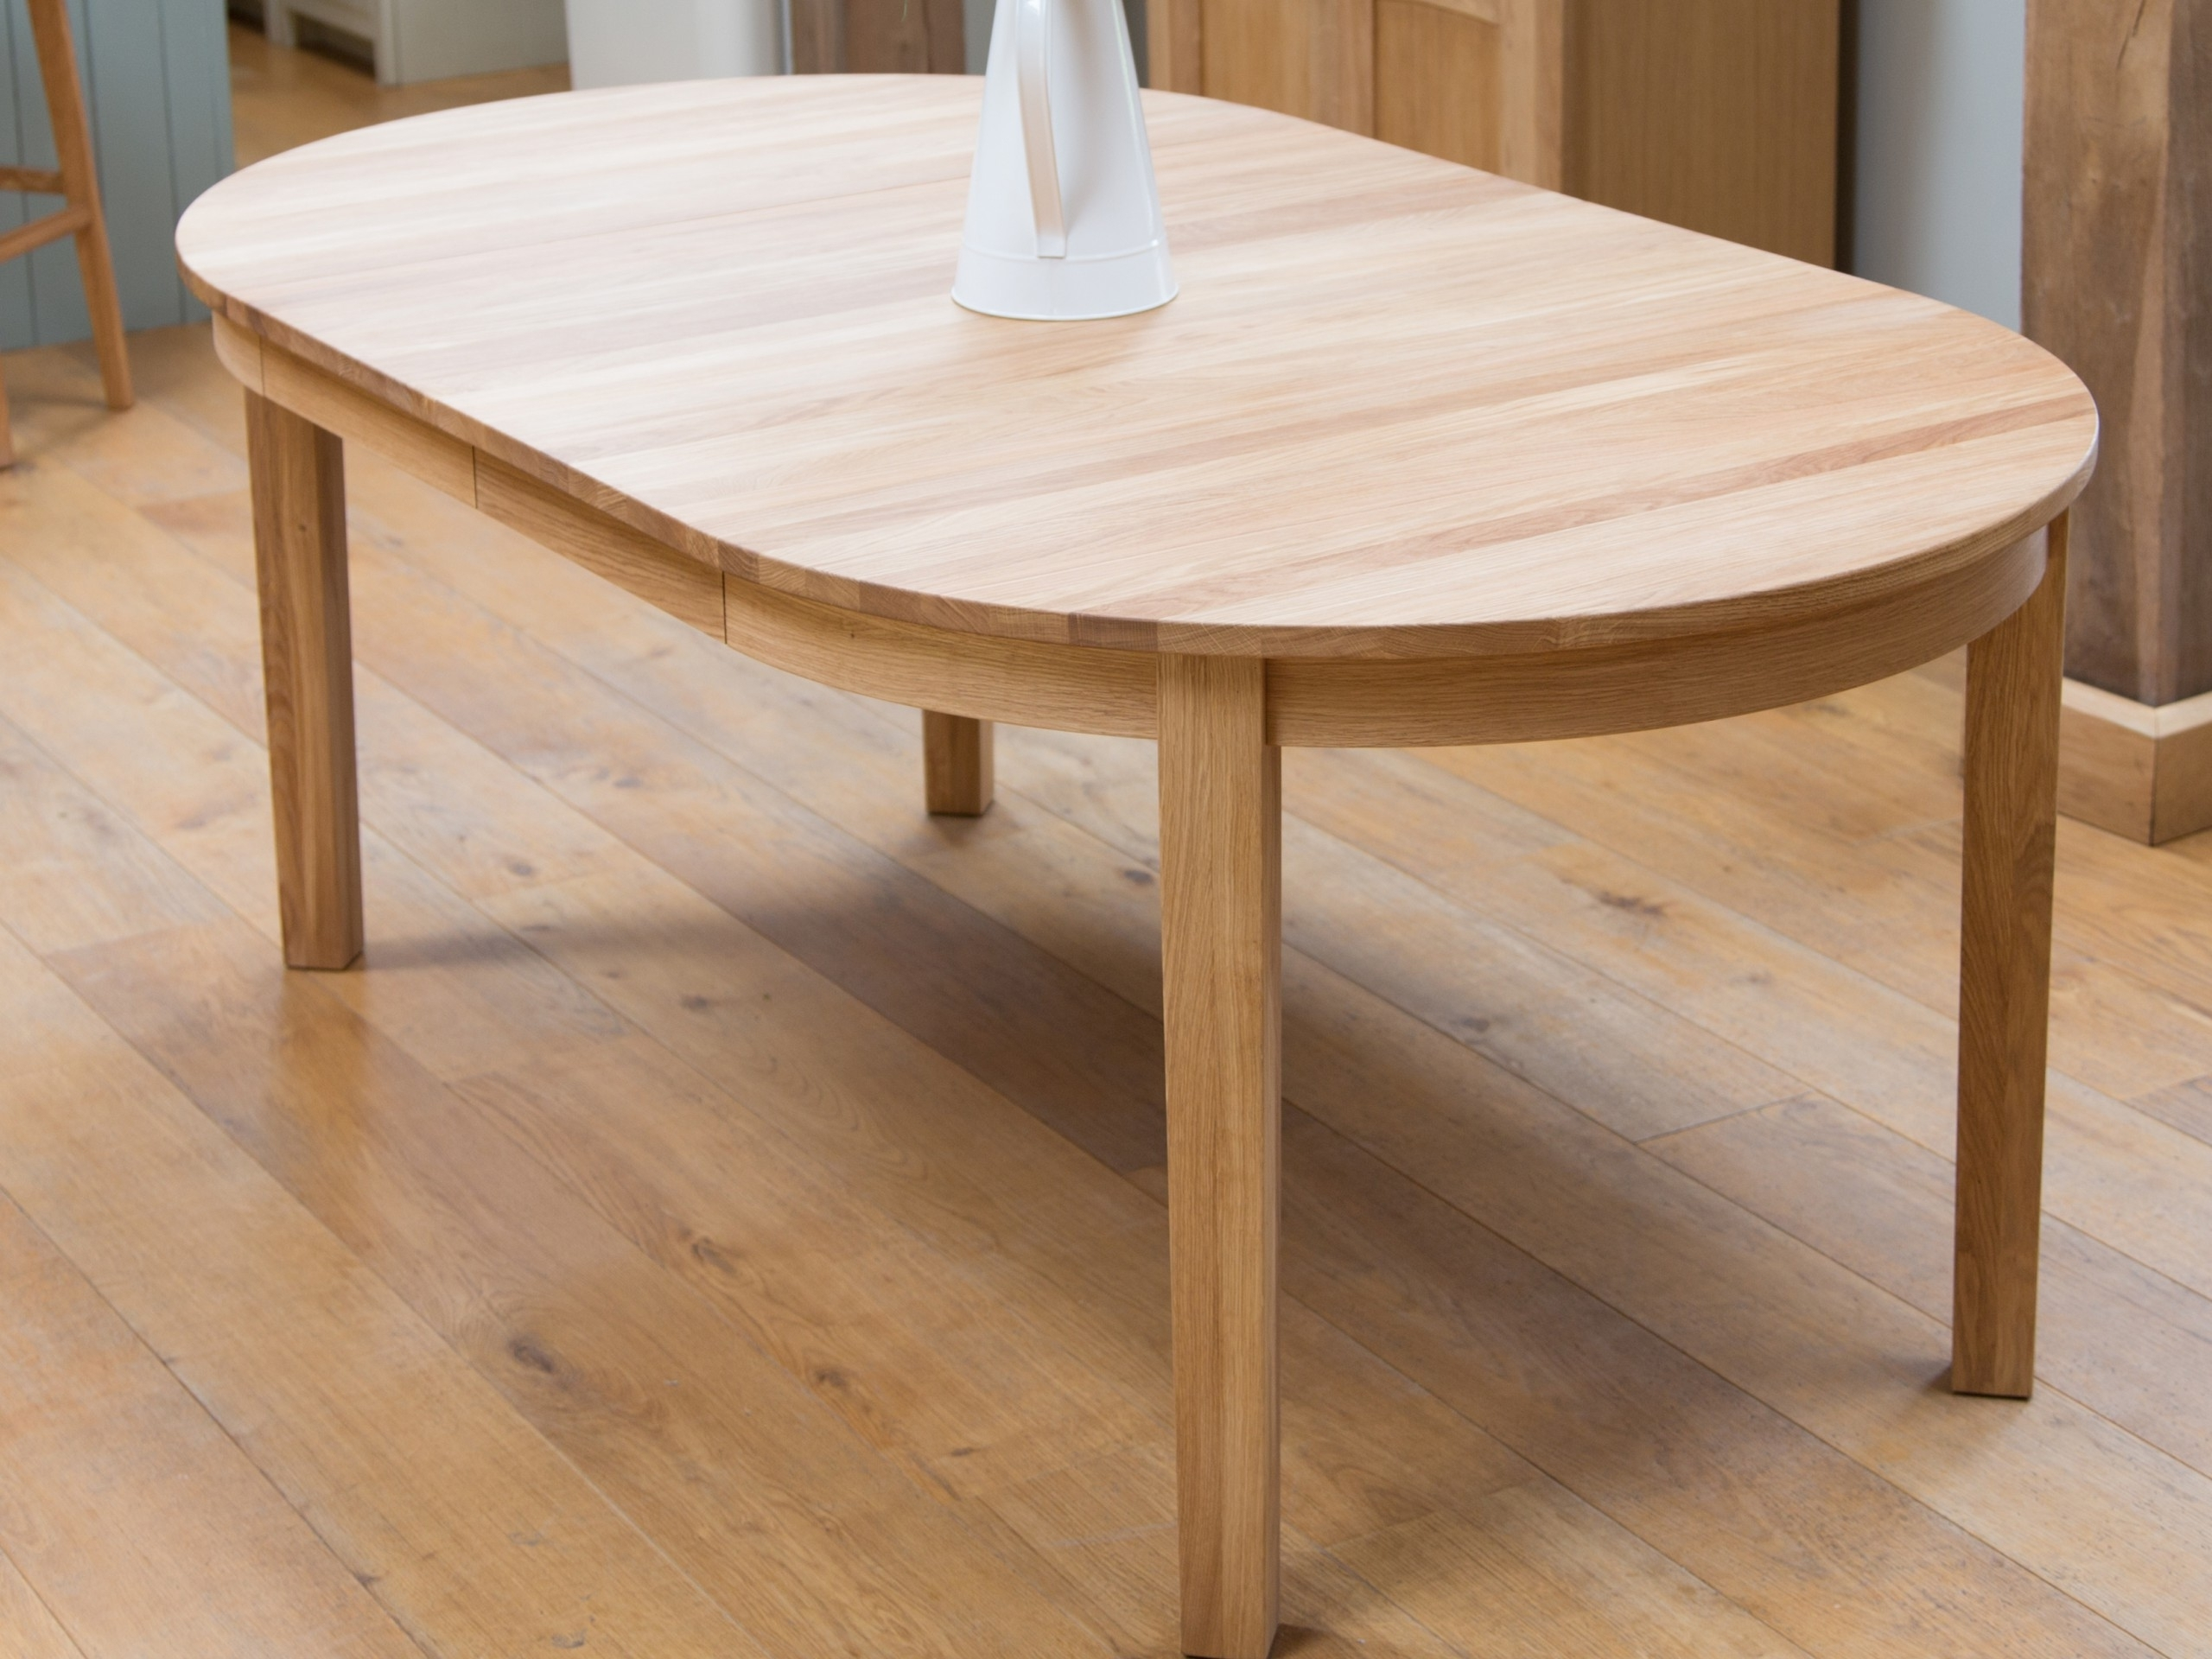 Newest Round Extendable Dining Table Design (View 18 of 25)